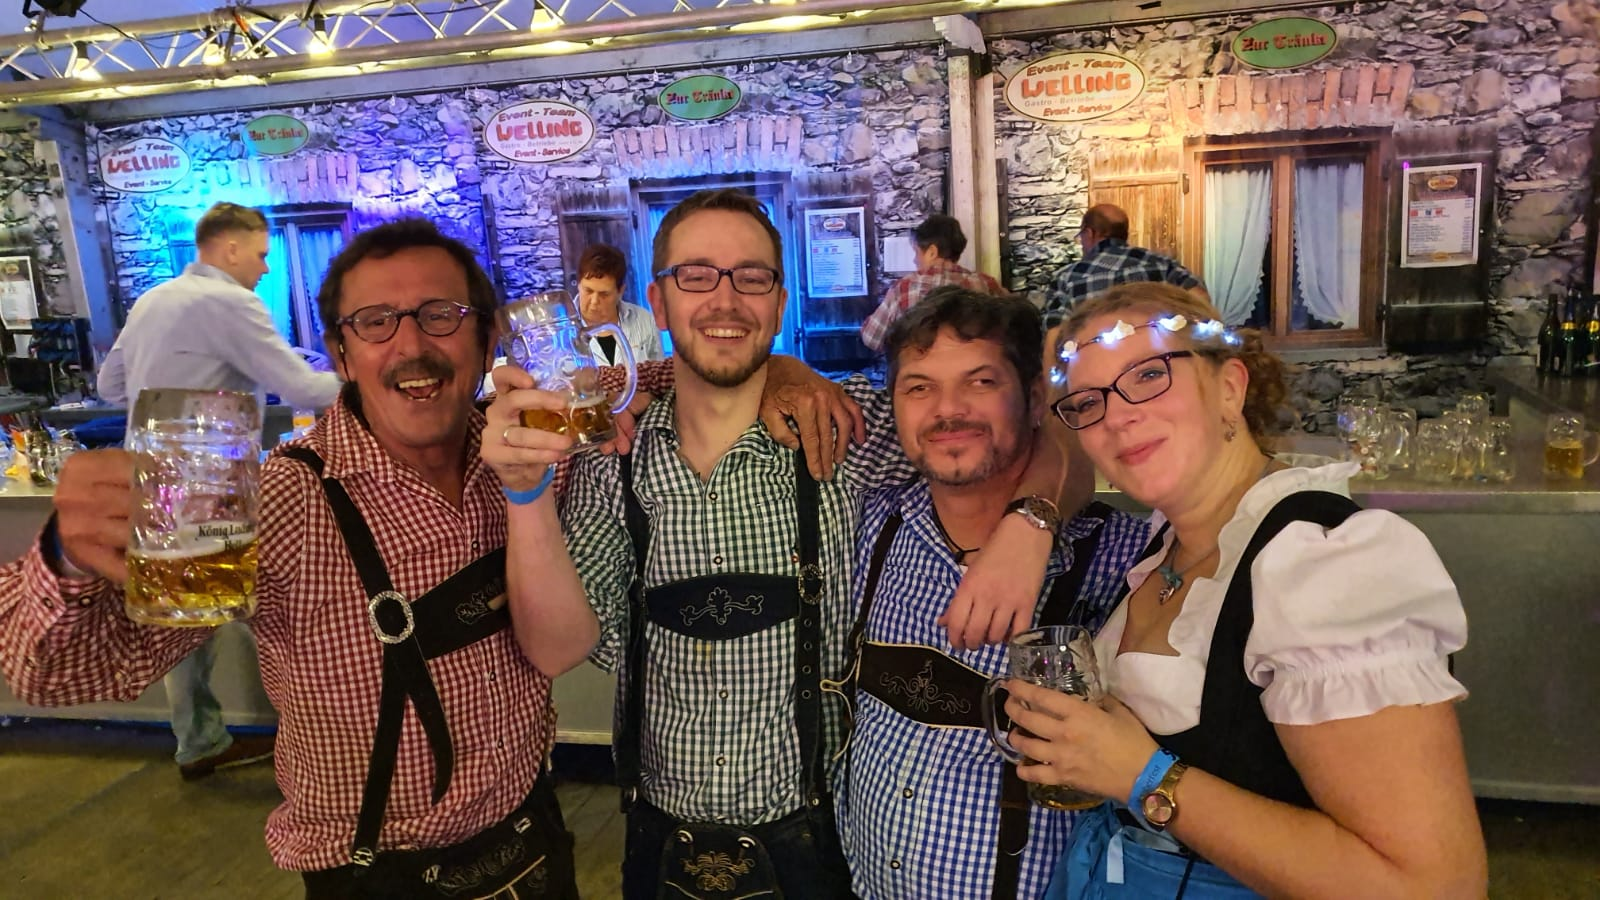 Oktoberfest in Meckinghoven